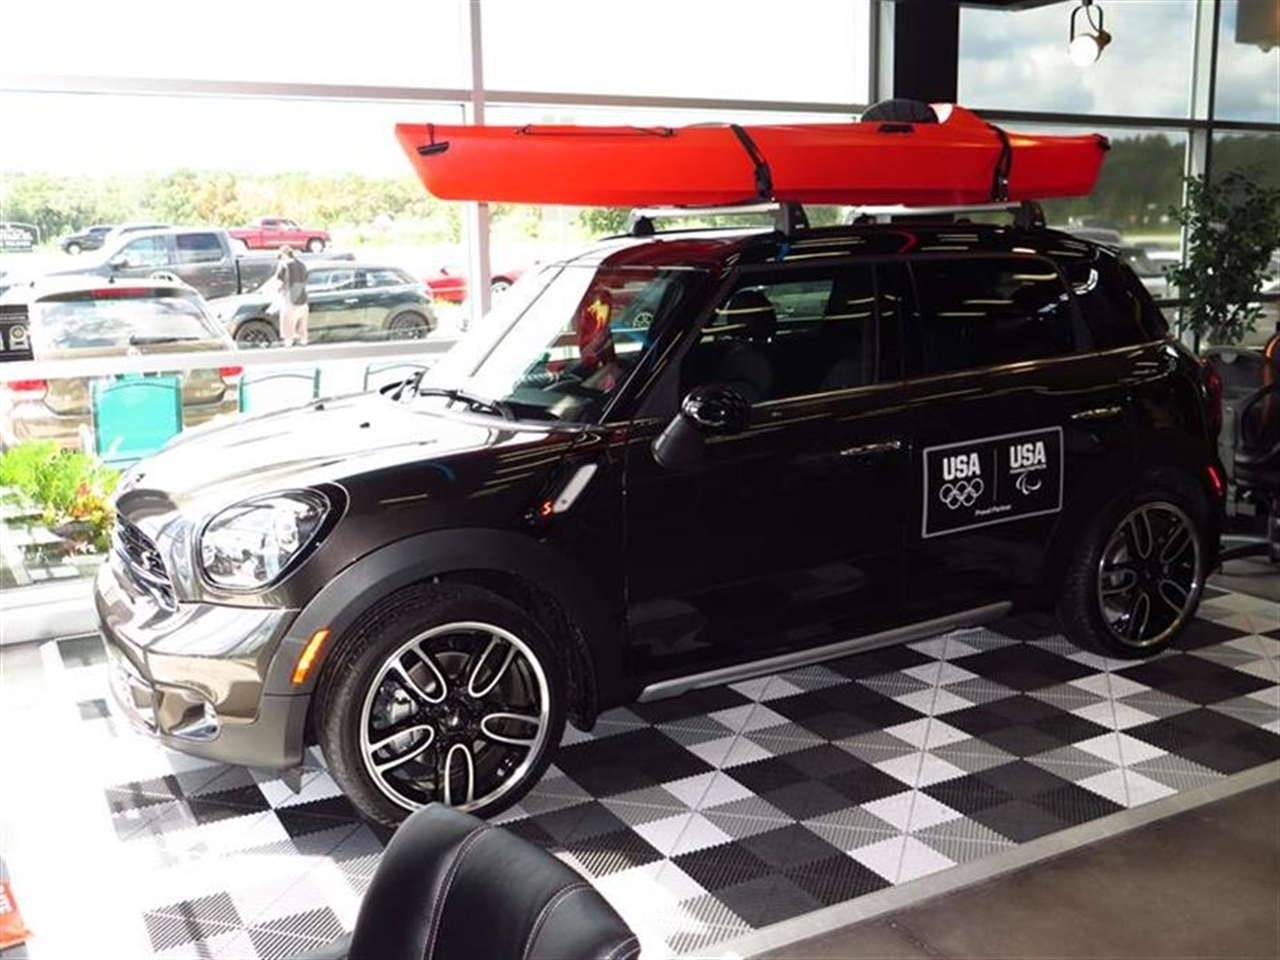 2015 MINI COOPER COUNTRYMAN ALL4 4dr S 0 miles 2 Seatback Storage Pockets 3 12V DC Power Outlets